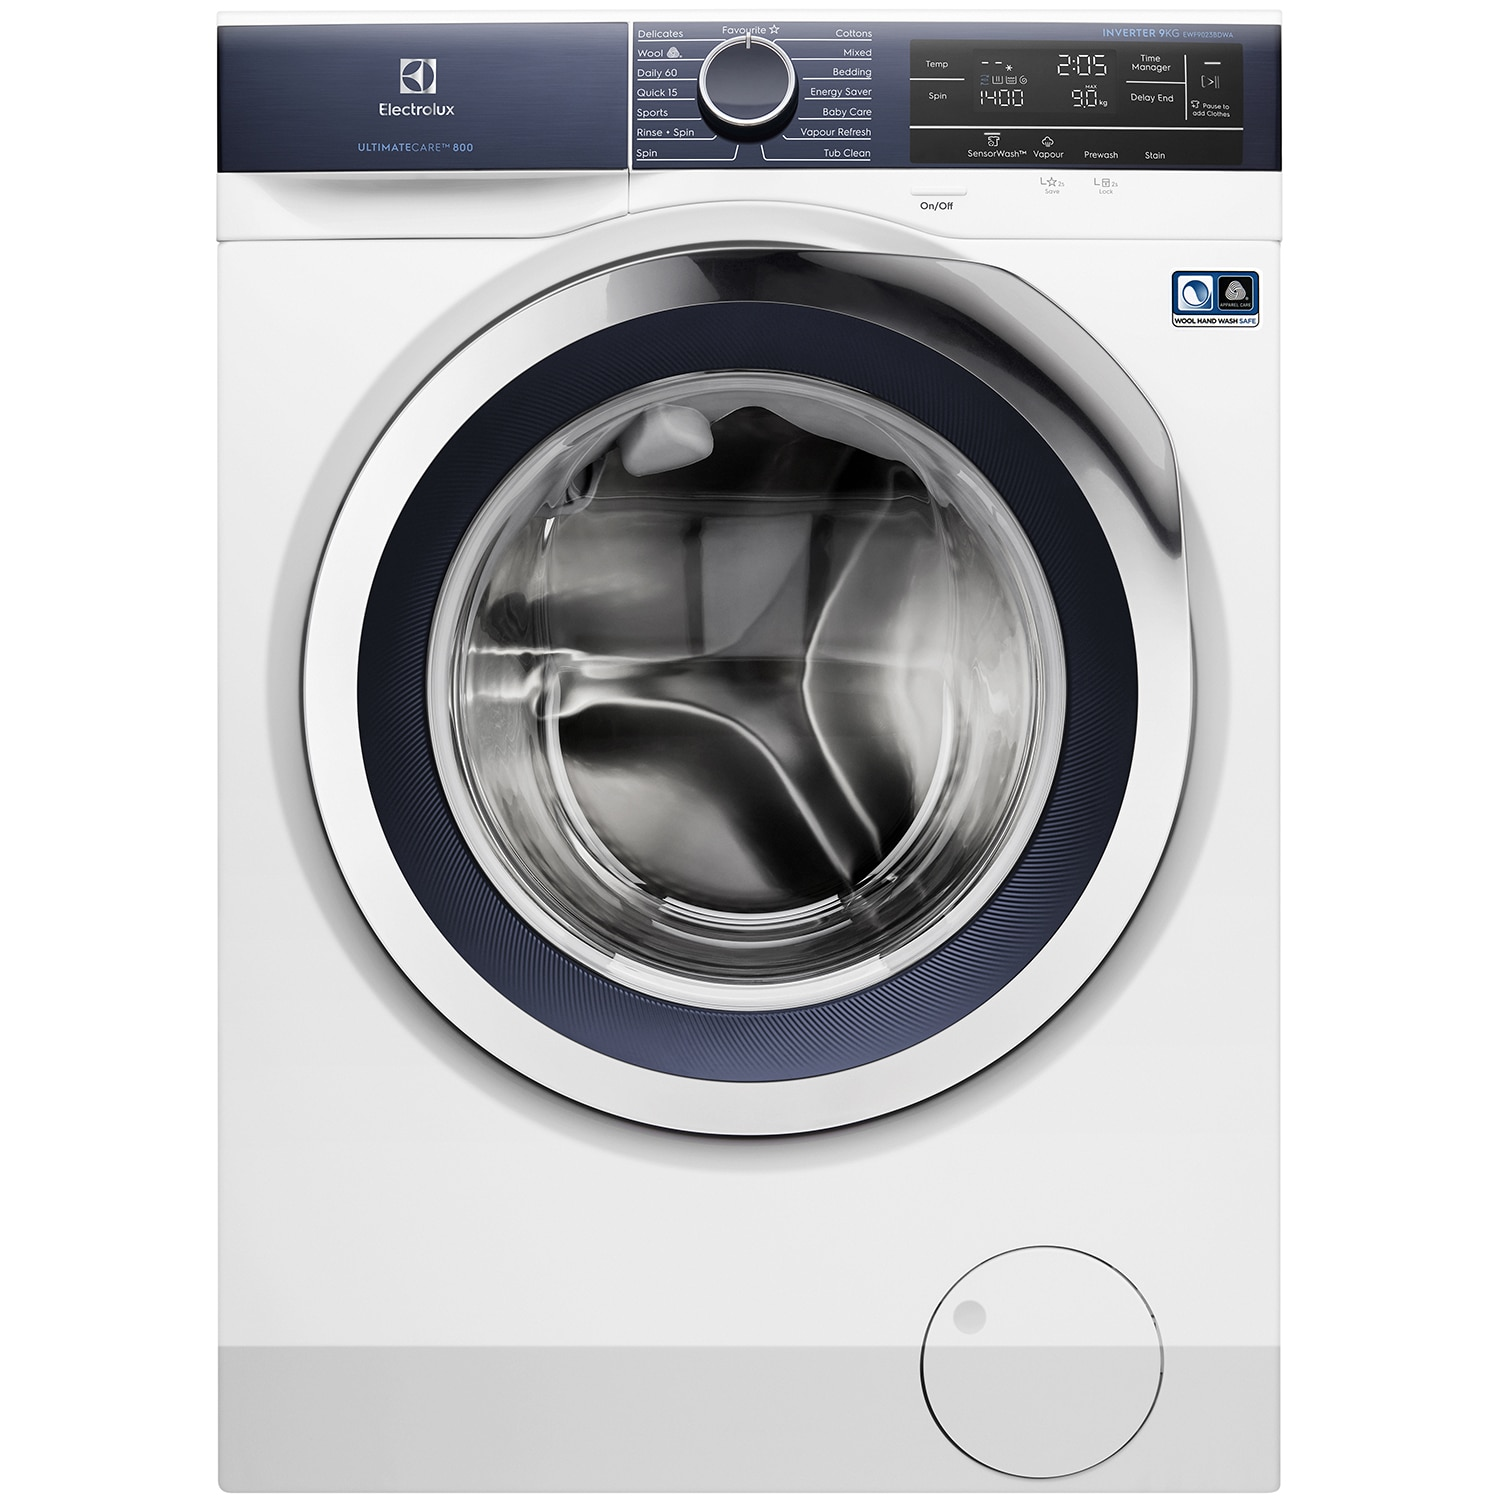 9kg UltimateCare™ 800 Washing Machine